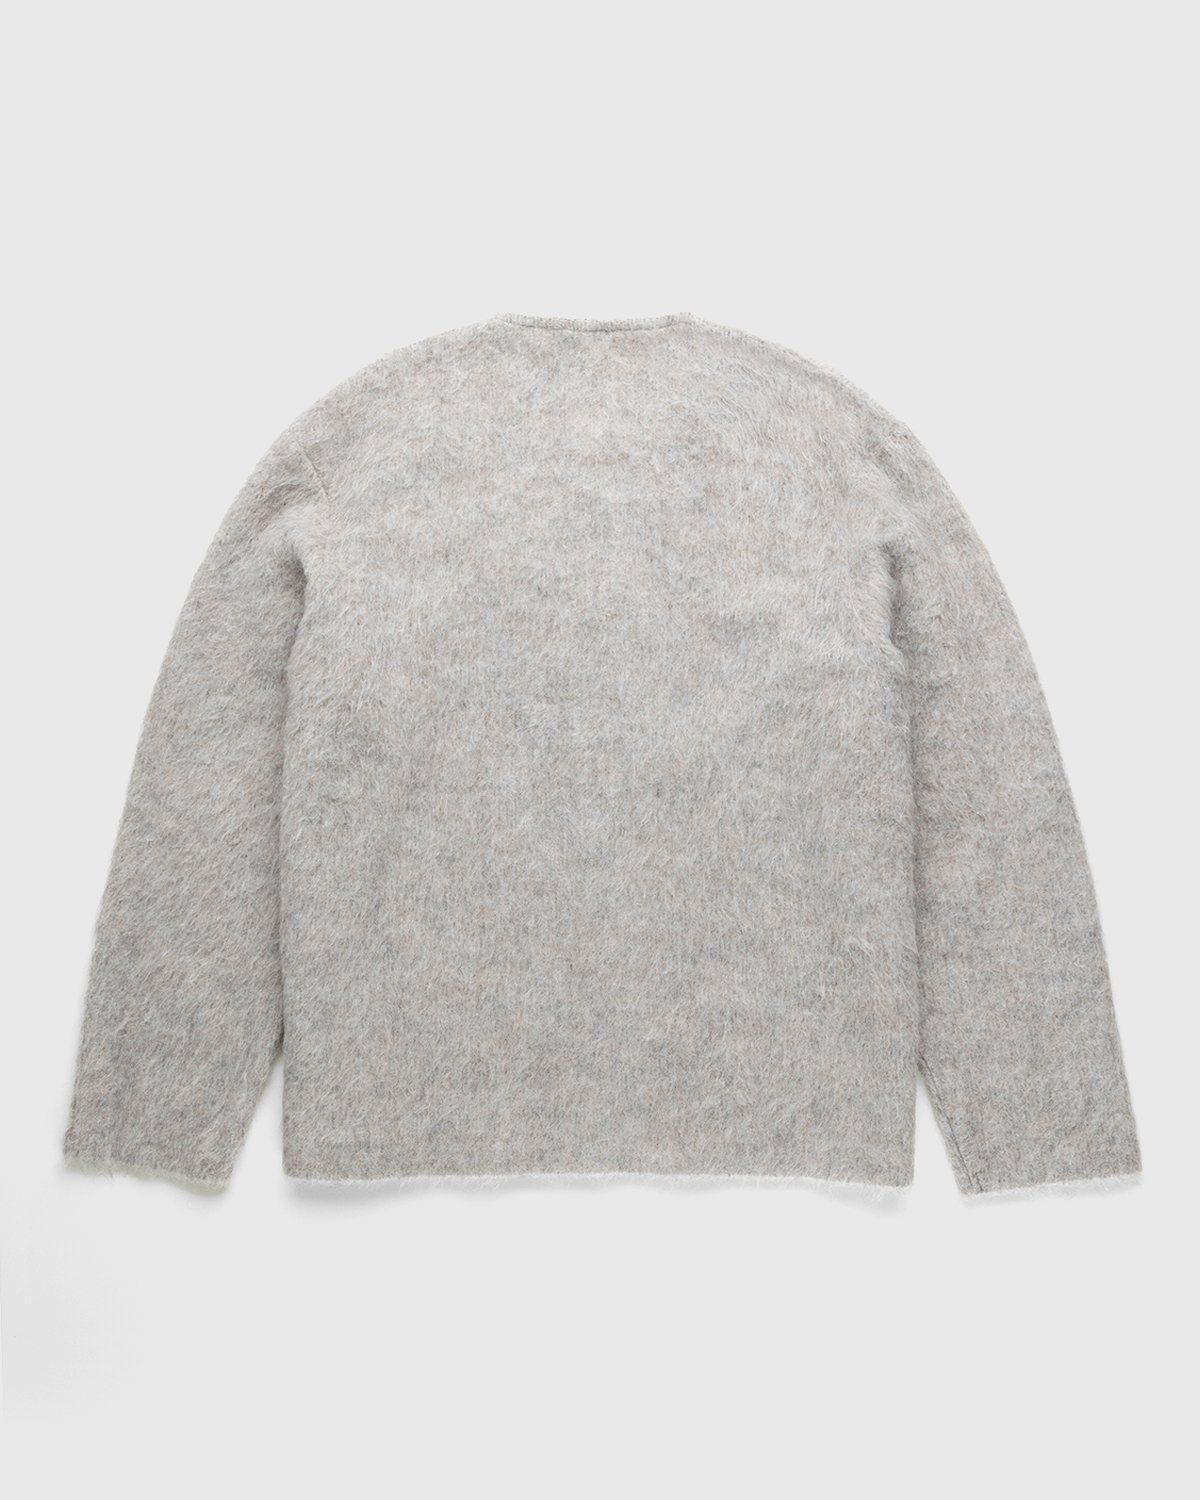 Our Legacy - Double Lock Sweater Grey Alpaca - Image 2